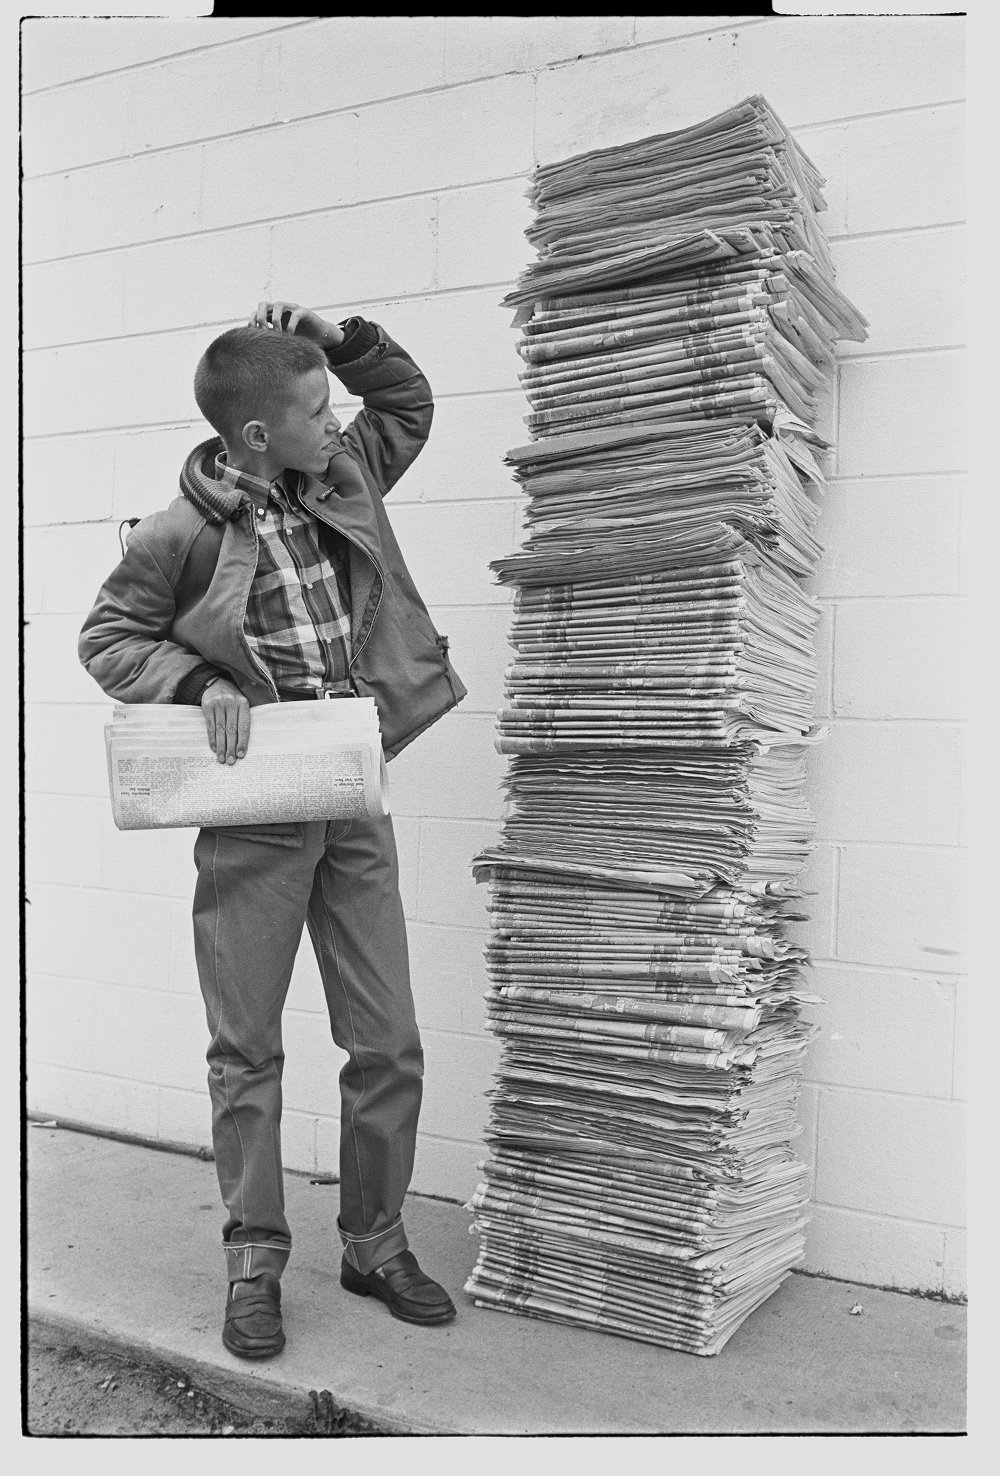 Image of a boy next to a stack of newspapers that towers over him